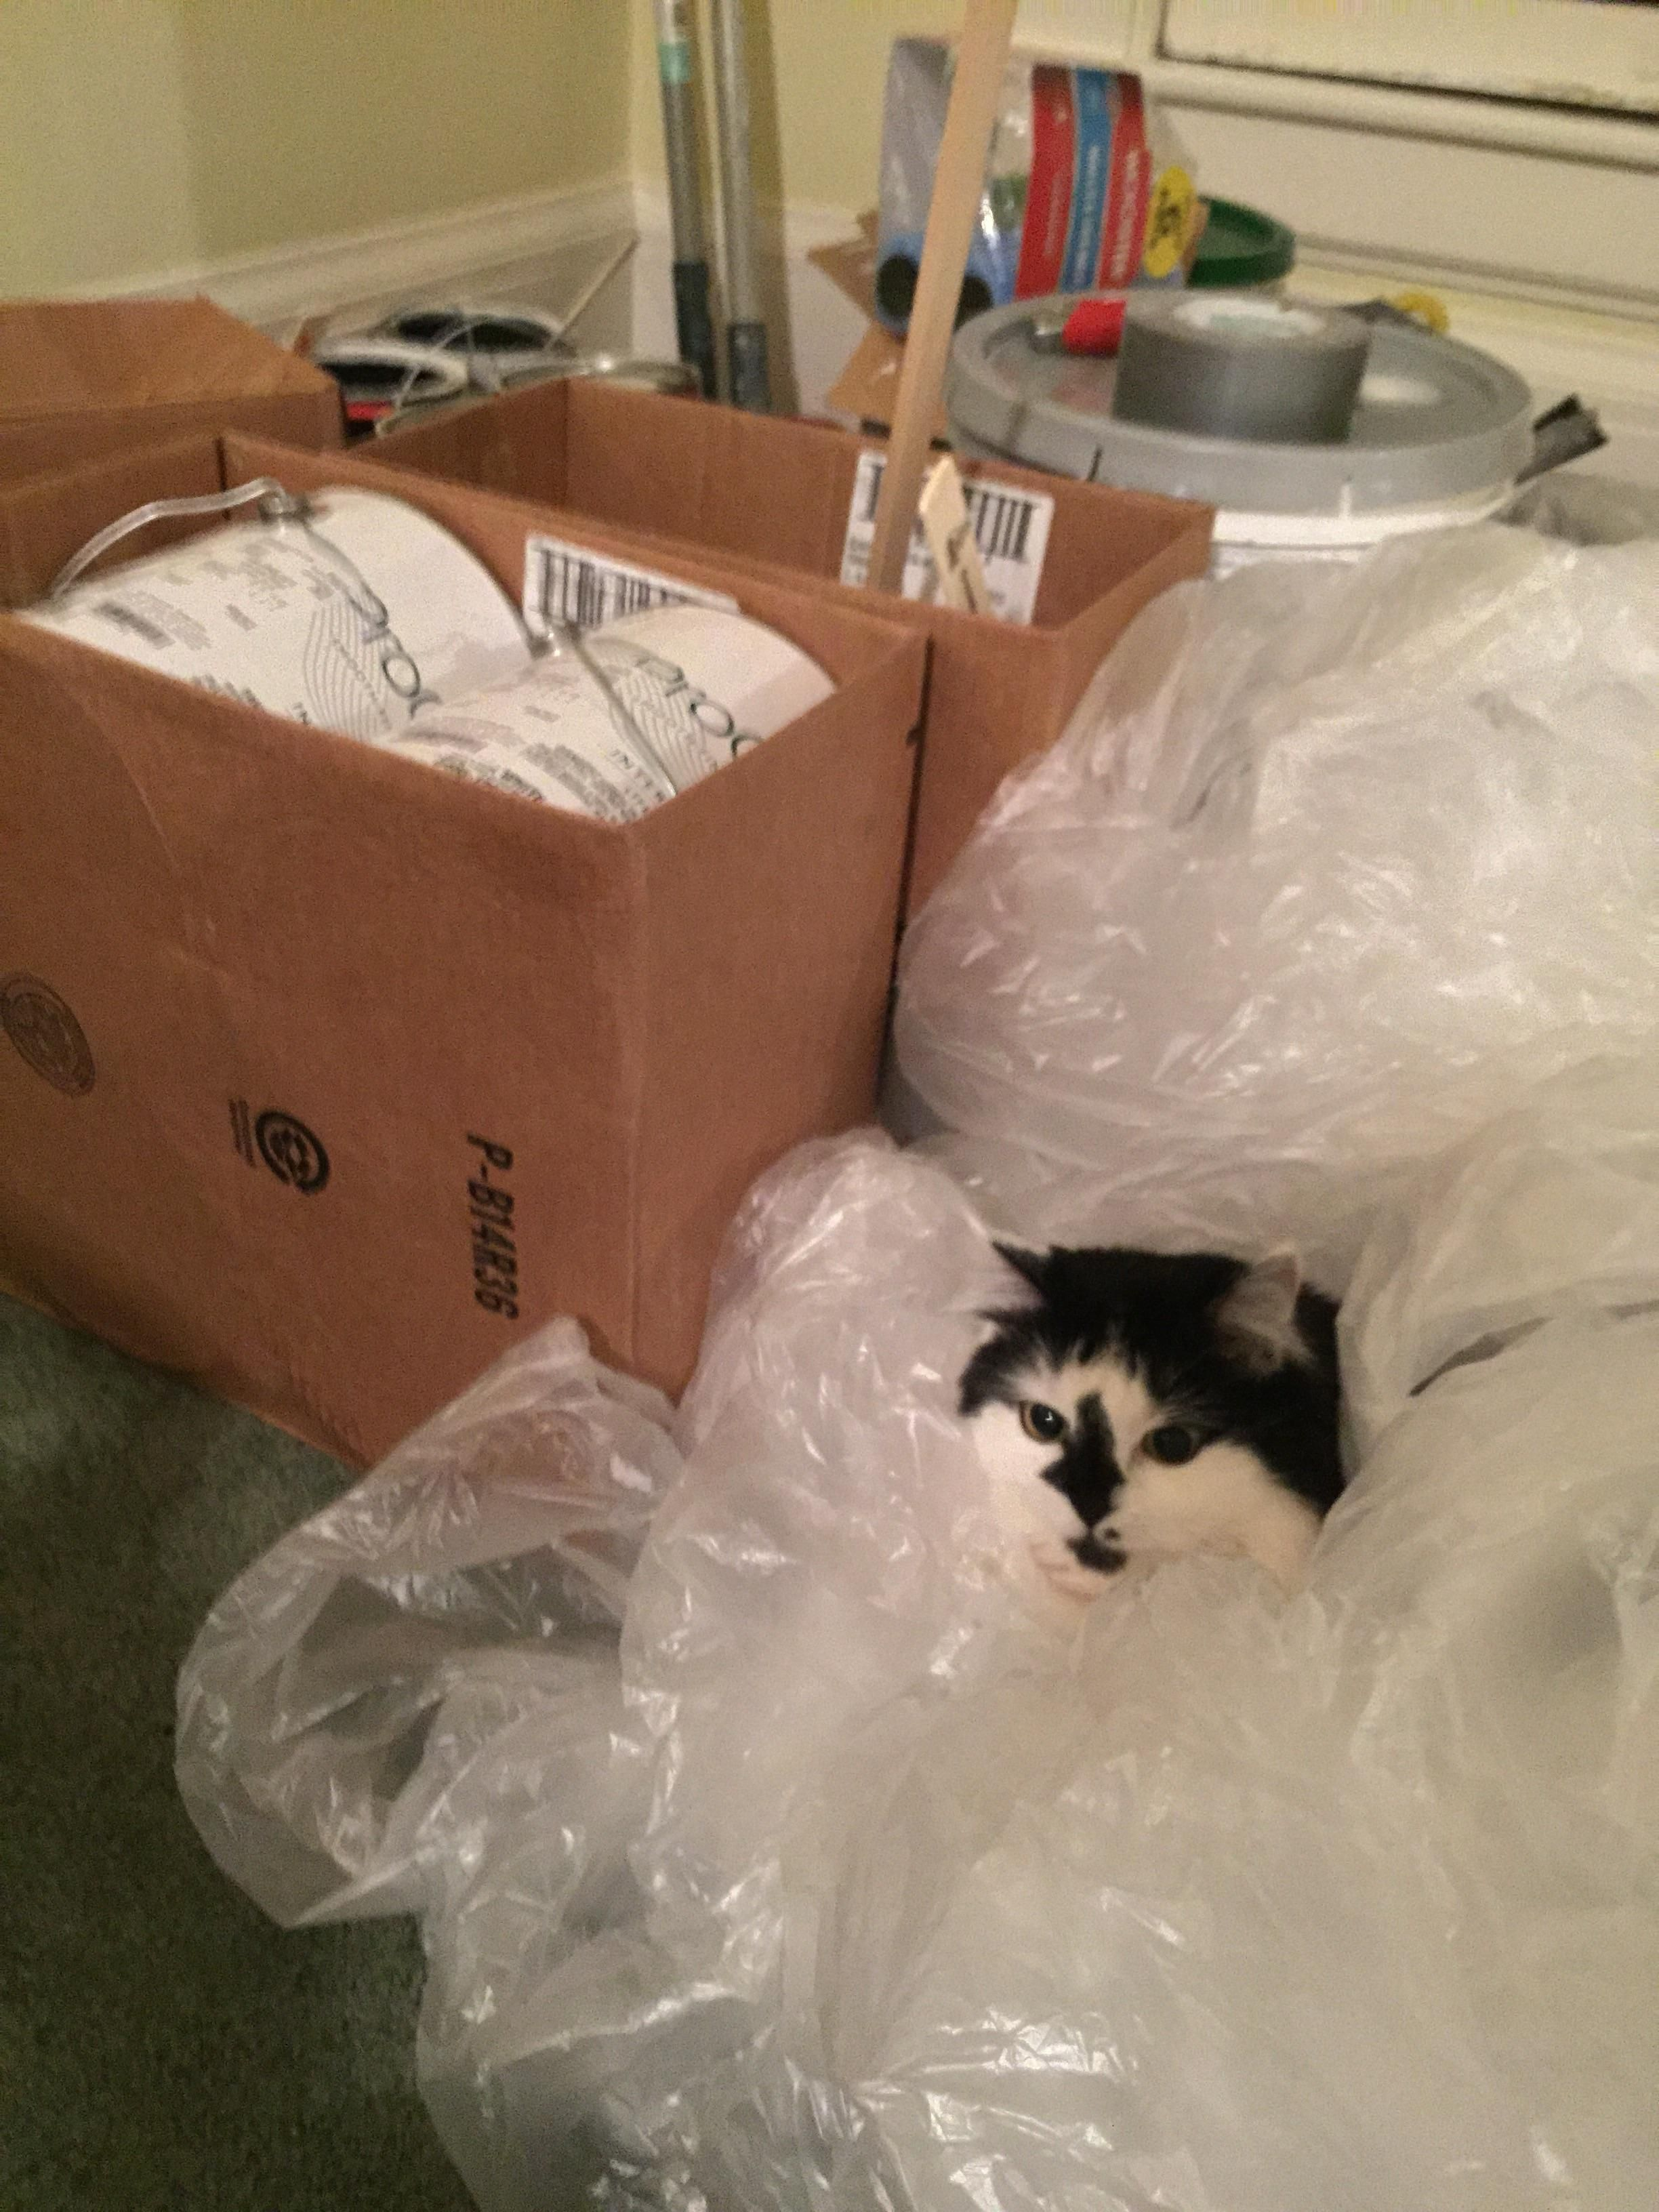 My Cat Has Crawled Into Plastic We Used Covering Furniture While Painting Https